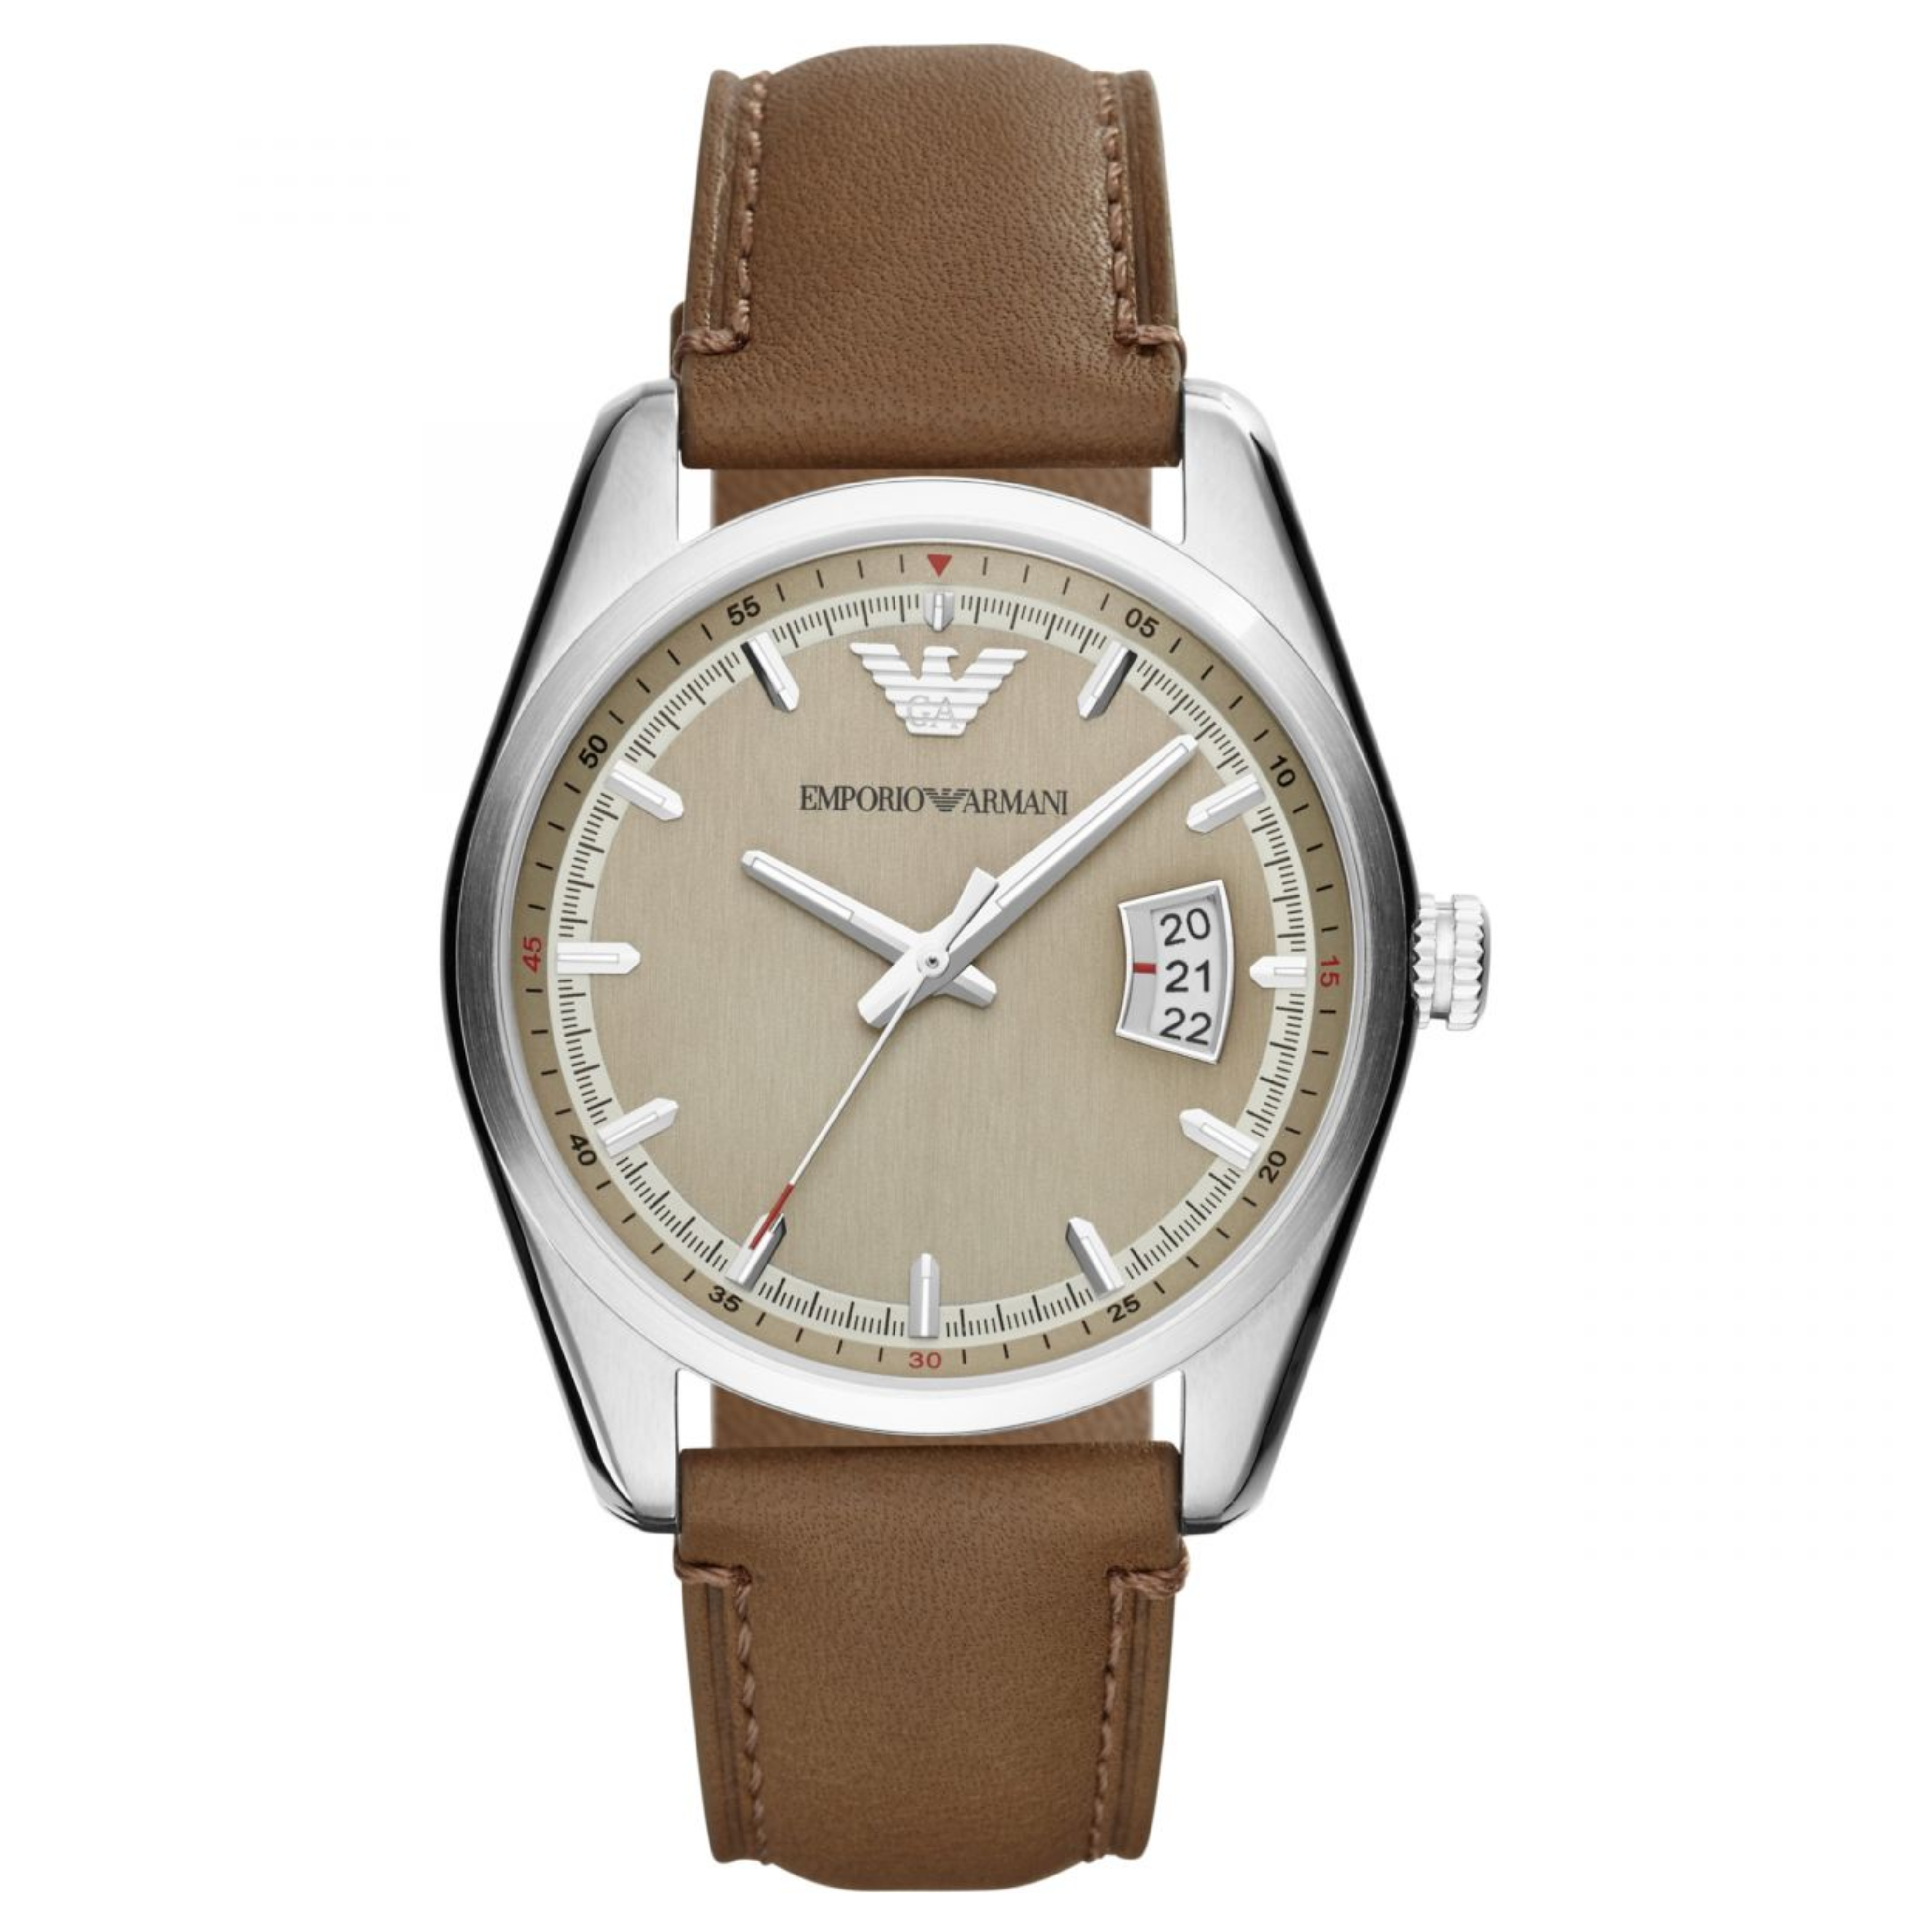 Emporio Armani Men's Formal Watch|Cream Round Dial|Brown Leather Strap|AR6016